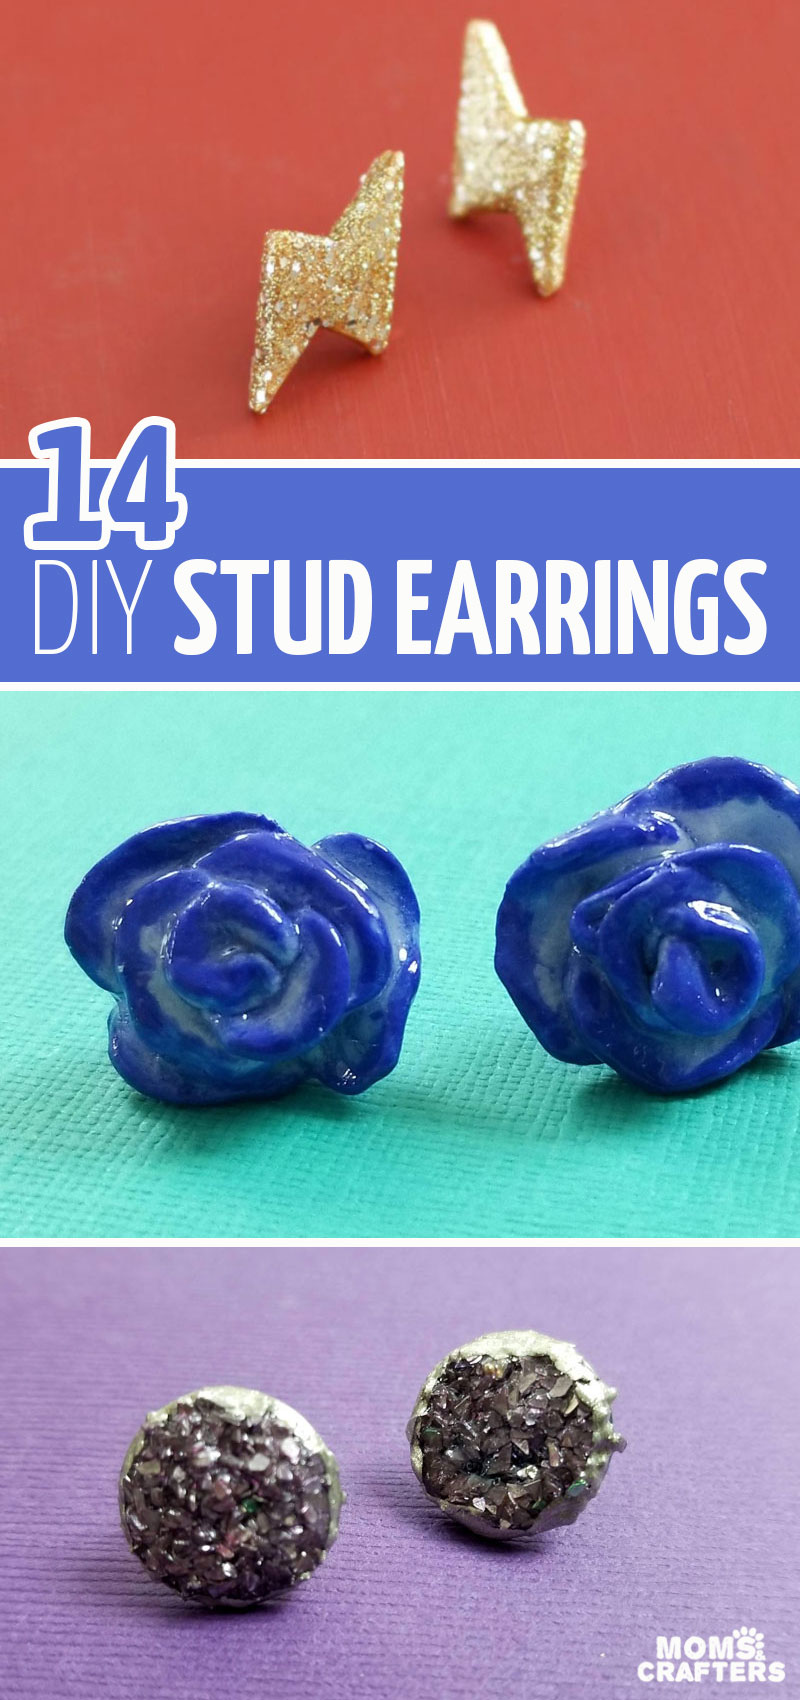 Click for 14 brilliant earring studs DIY ideas and jewelry making tutorials for beginners! These beautiful crafts for teens are simple and gorgeous - and totally unique statement earrings.